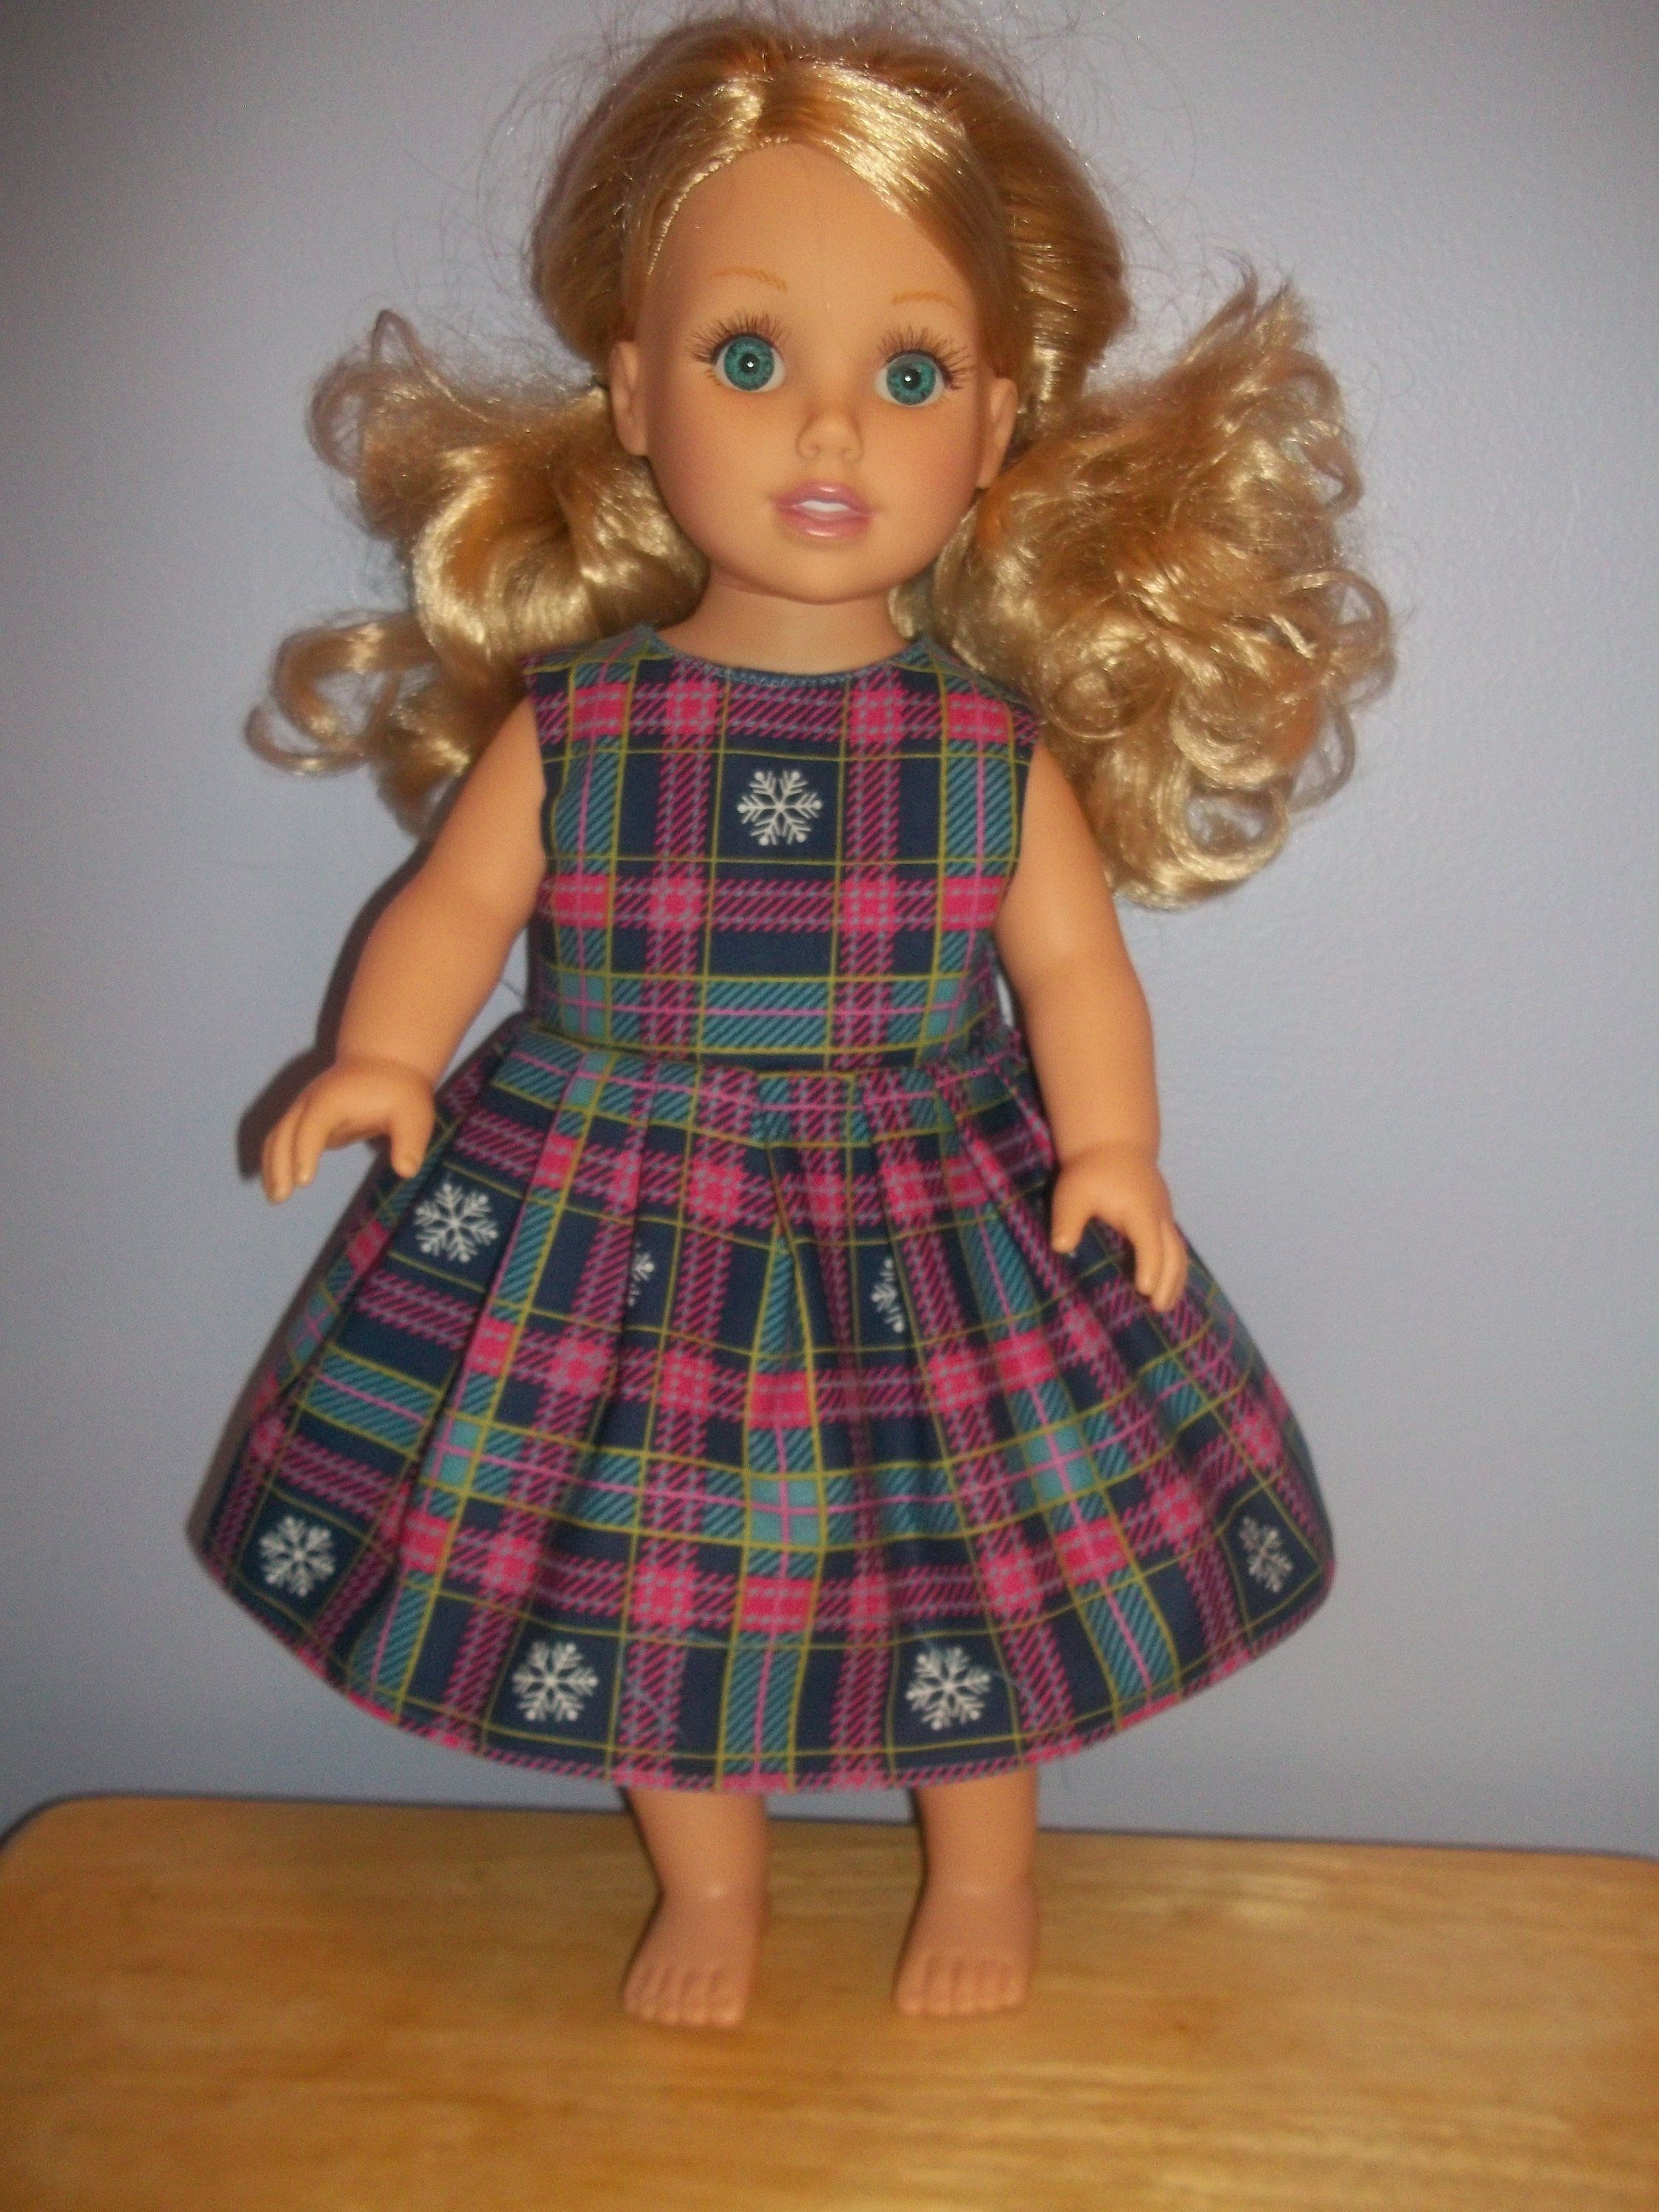 American 18 Inch Doll Clothes dress blue and pink with Snowflakes #18inchdollsandclothes